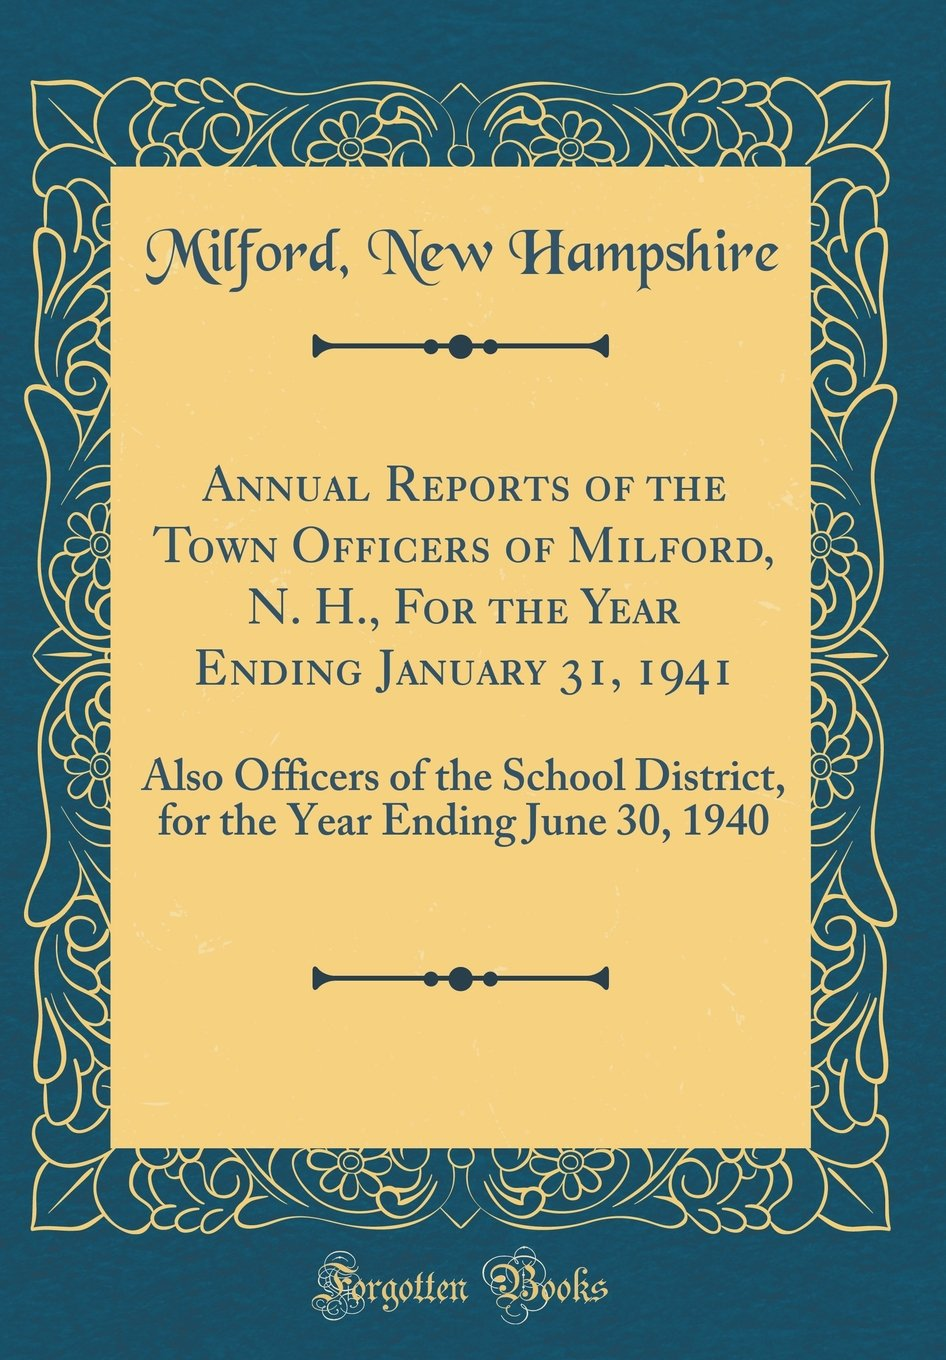 Download Annual Reports of the Town Officers of Milford, N. H., for the Year Ending January 31, 1941: Also Officers of the School District, for the Year Ending June 30, 1940 (Classic Reprint) pdf epub